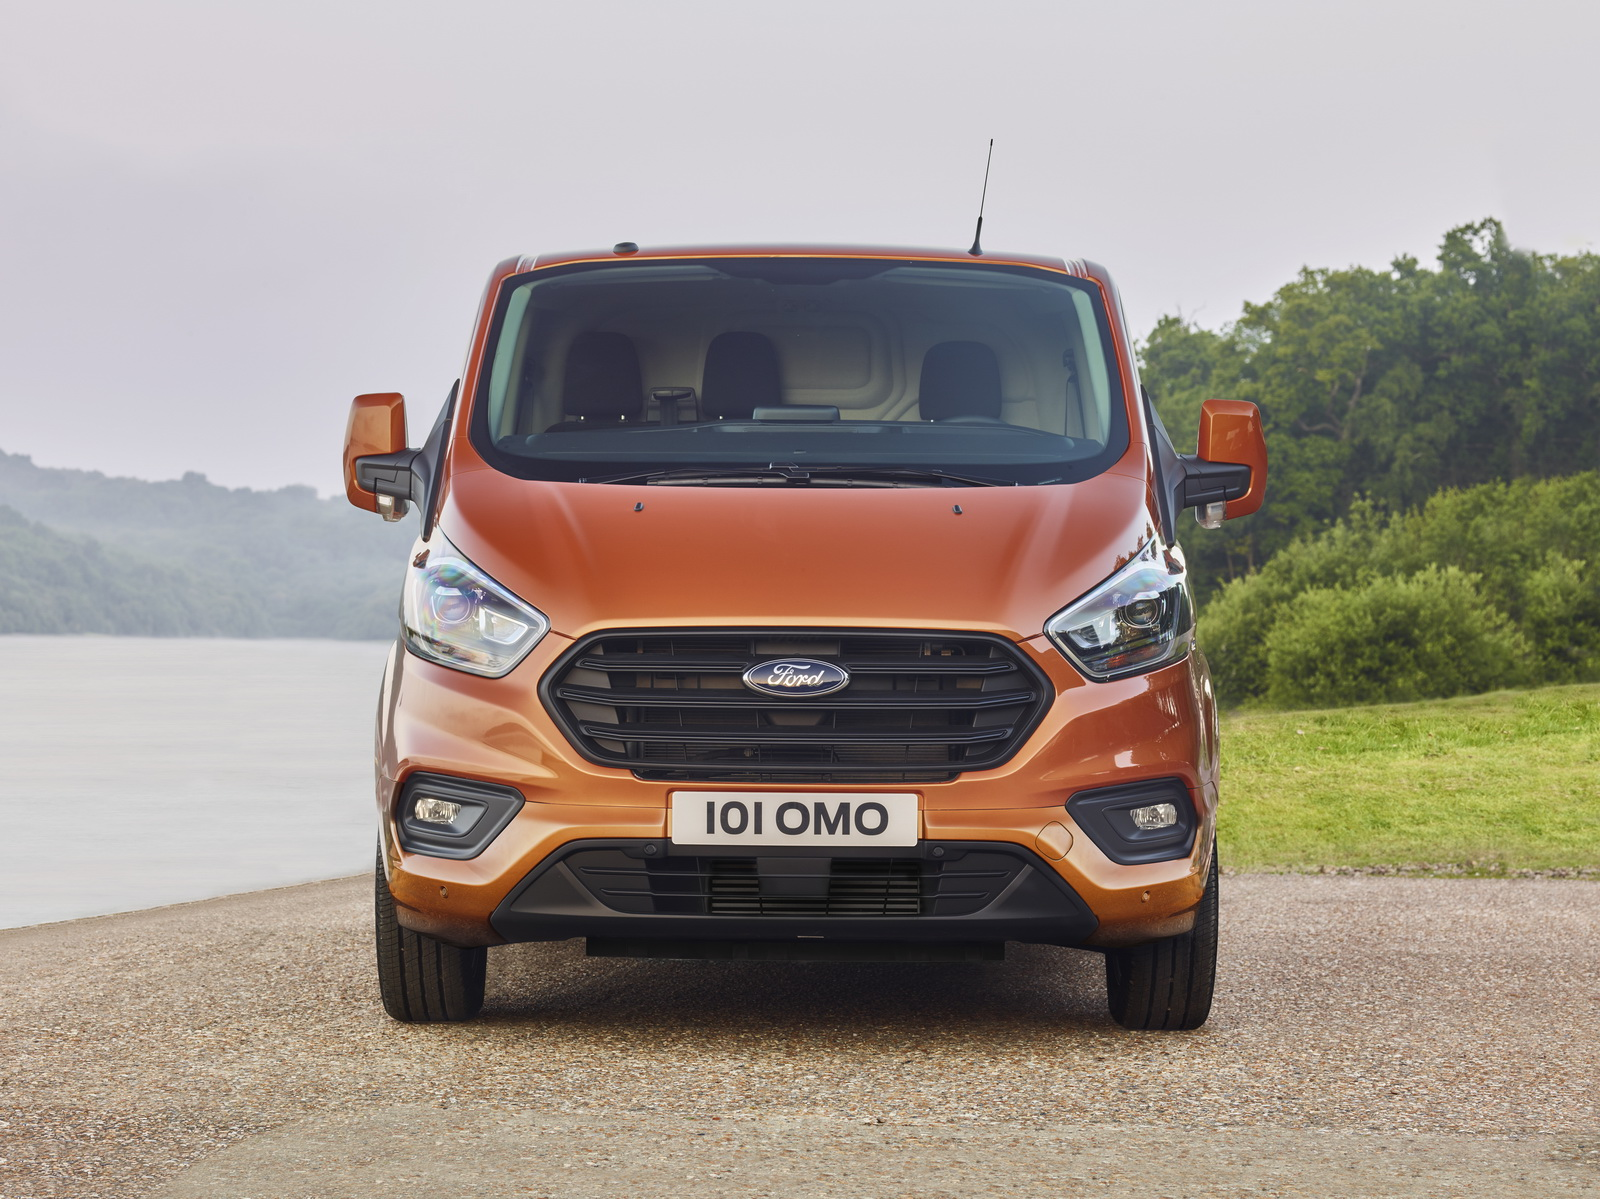 2017 - [Ford] Tourneo/Transit restylé - Page 2 2017_Ford_Transit_7